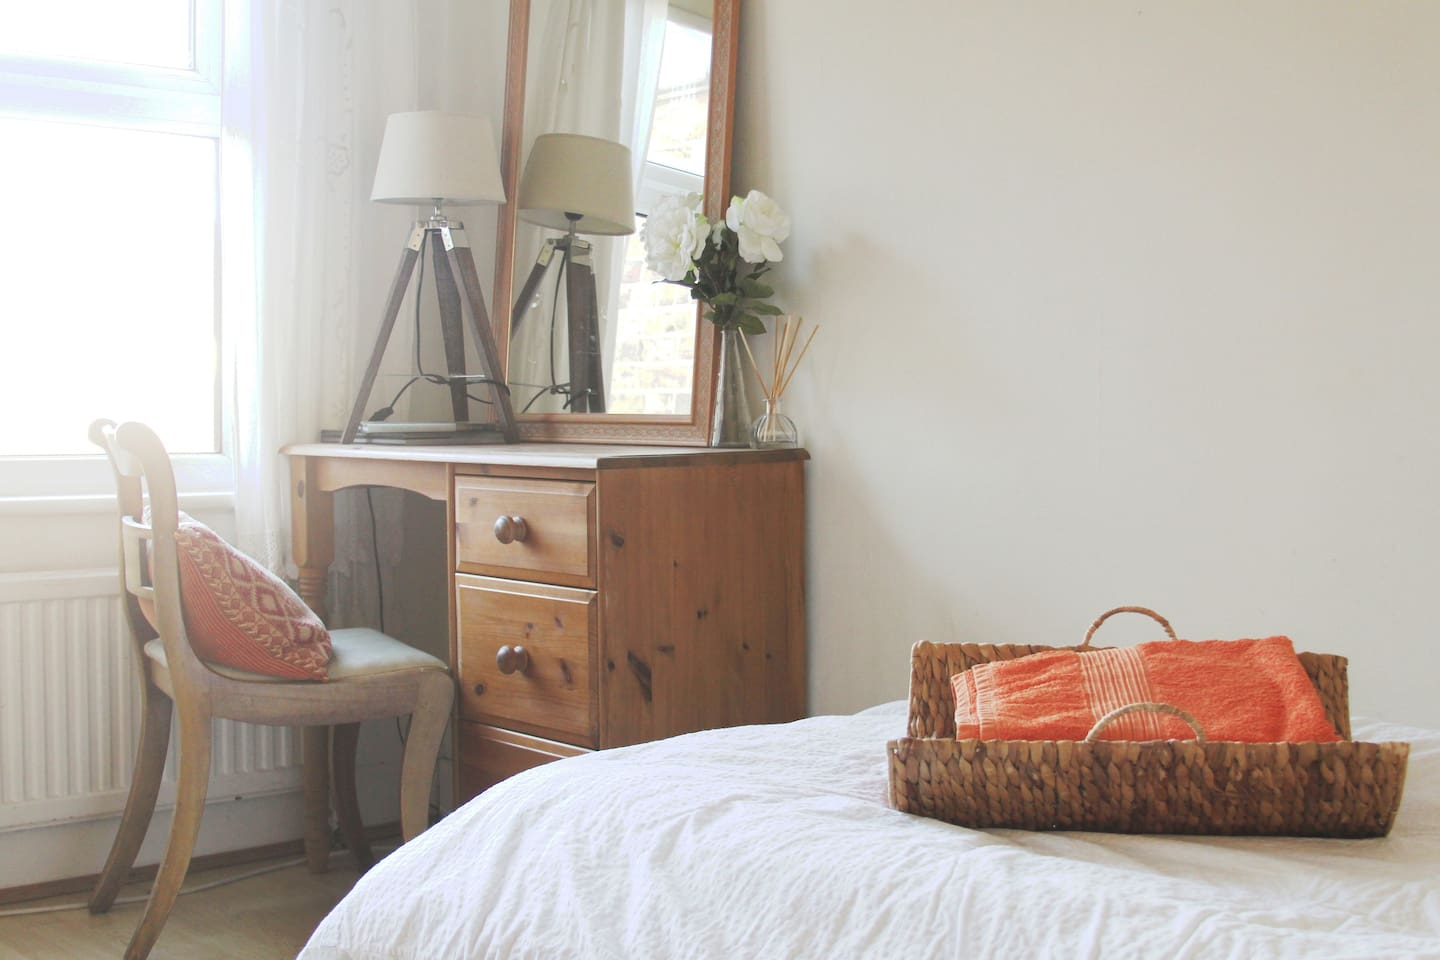 This it the White Room, it's a welcoming room with a desk area with a view out to the back garden, an easy going atmosphere, with wifi, a towel, hairdryer, bedside water, all provided so you can relax in your own space.